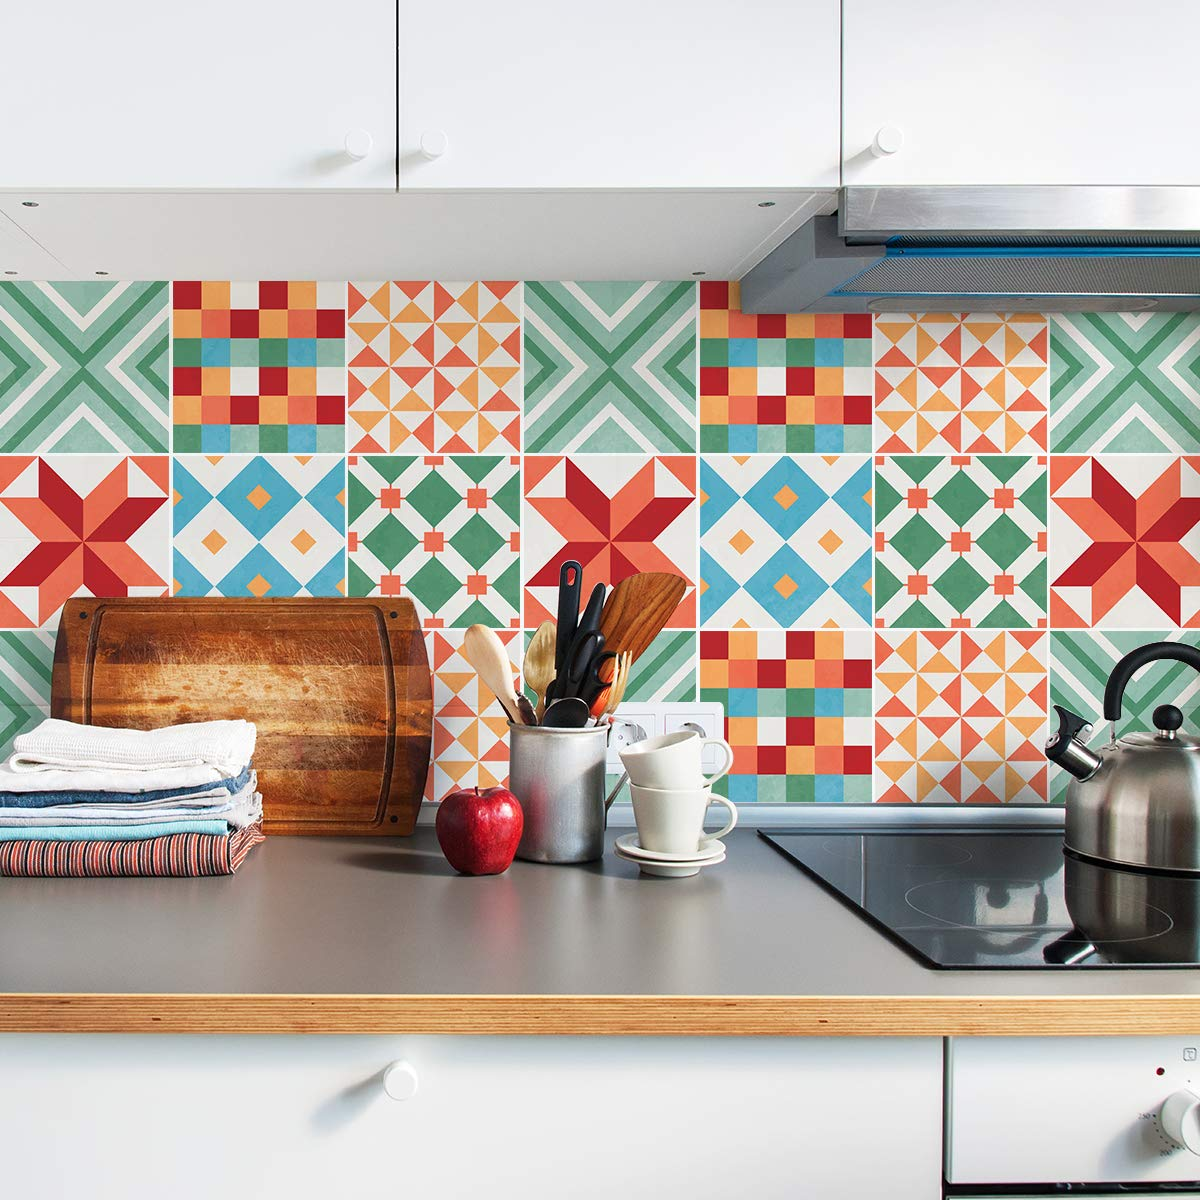 Sirface Colourful Geometric Tile Decals - Tile Stickers Set for Kitchen and Bathroom - PACK OF 24 - Different (4x4 inches | 10x10 cm)